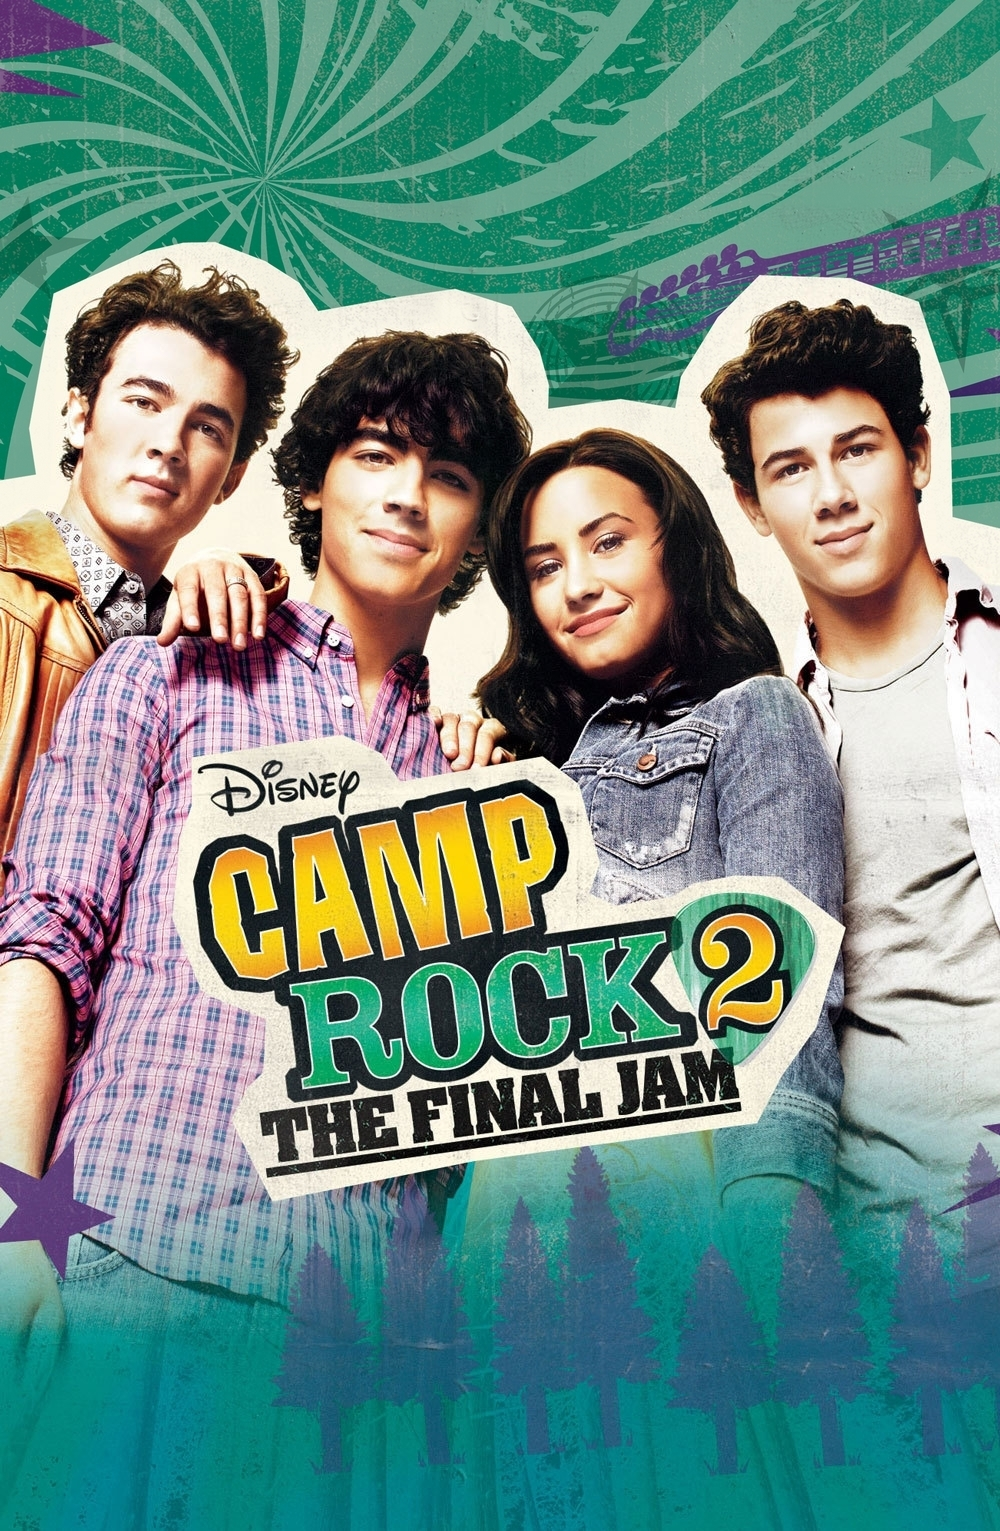 Rocktabor 2 A Zarobuli Camp Rock 2 The Final Jam 2010 Mafab Hu